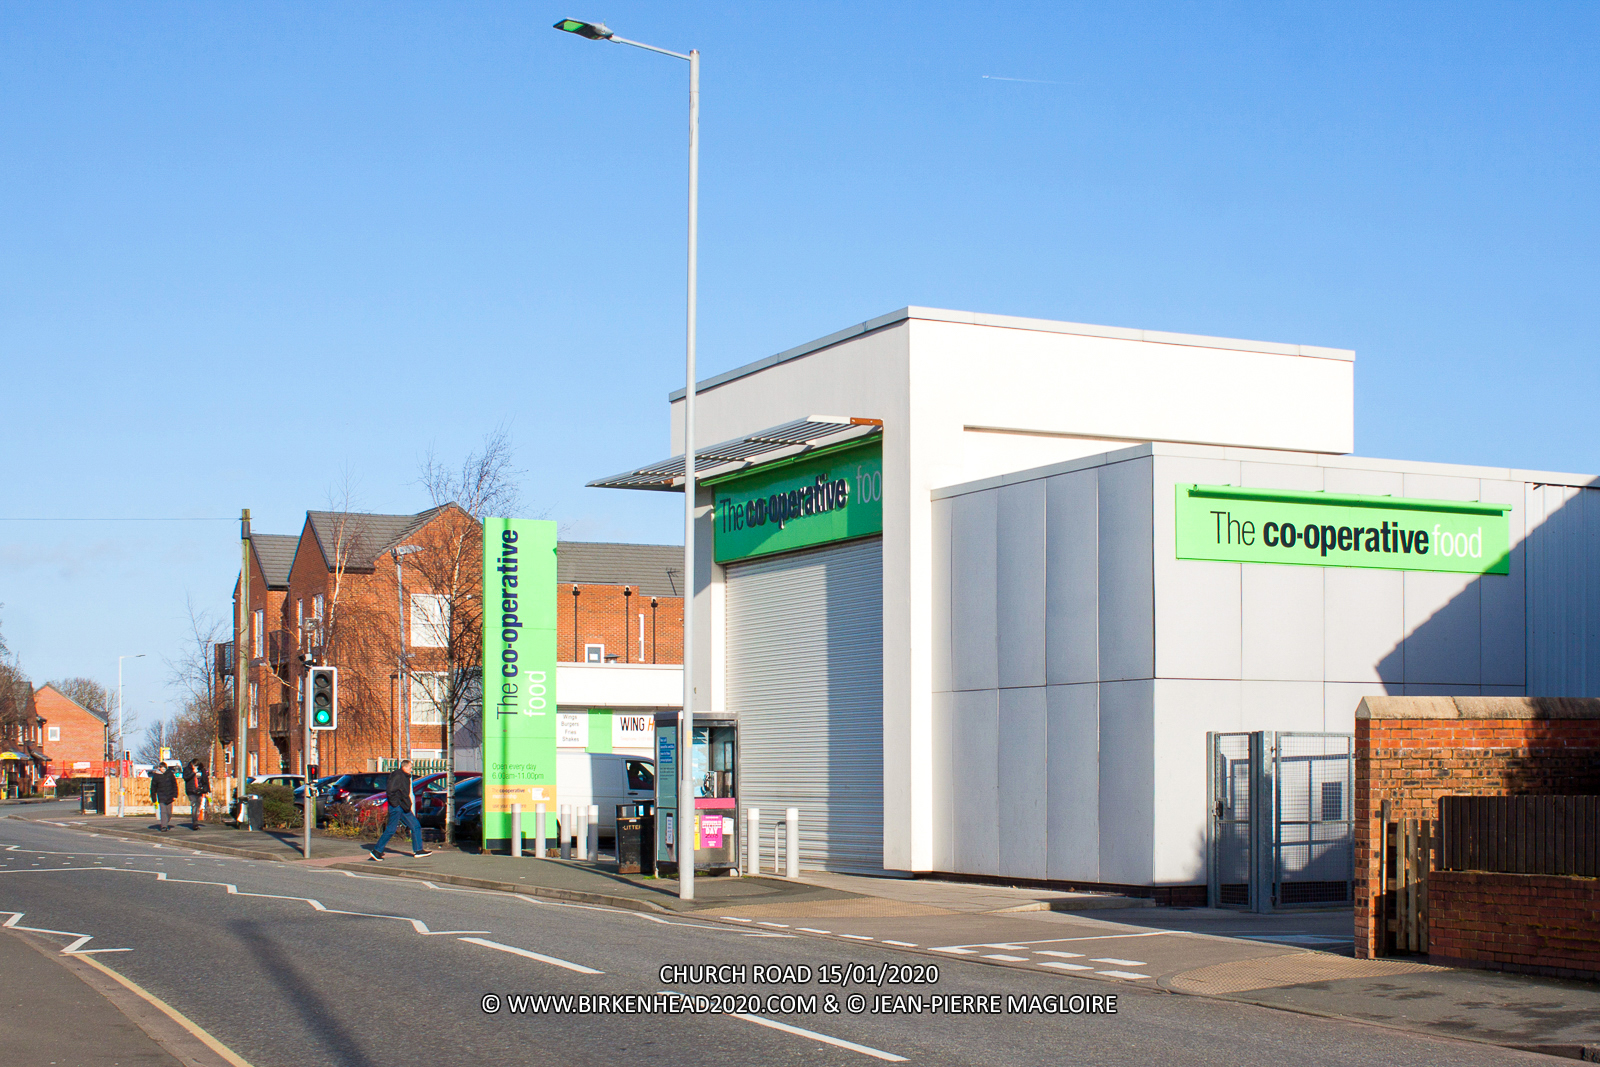 20200115 Church Road_Tranmere_CoOp_3